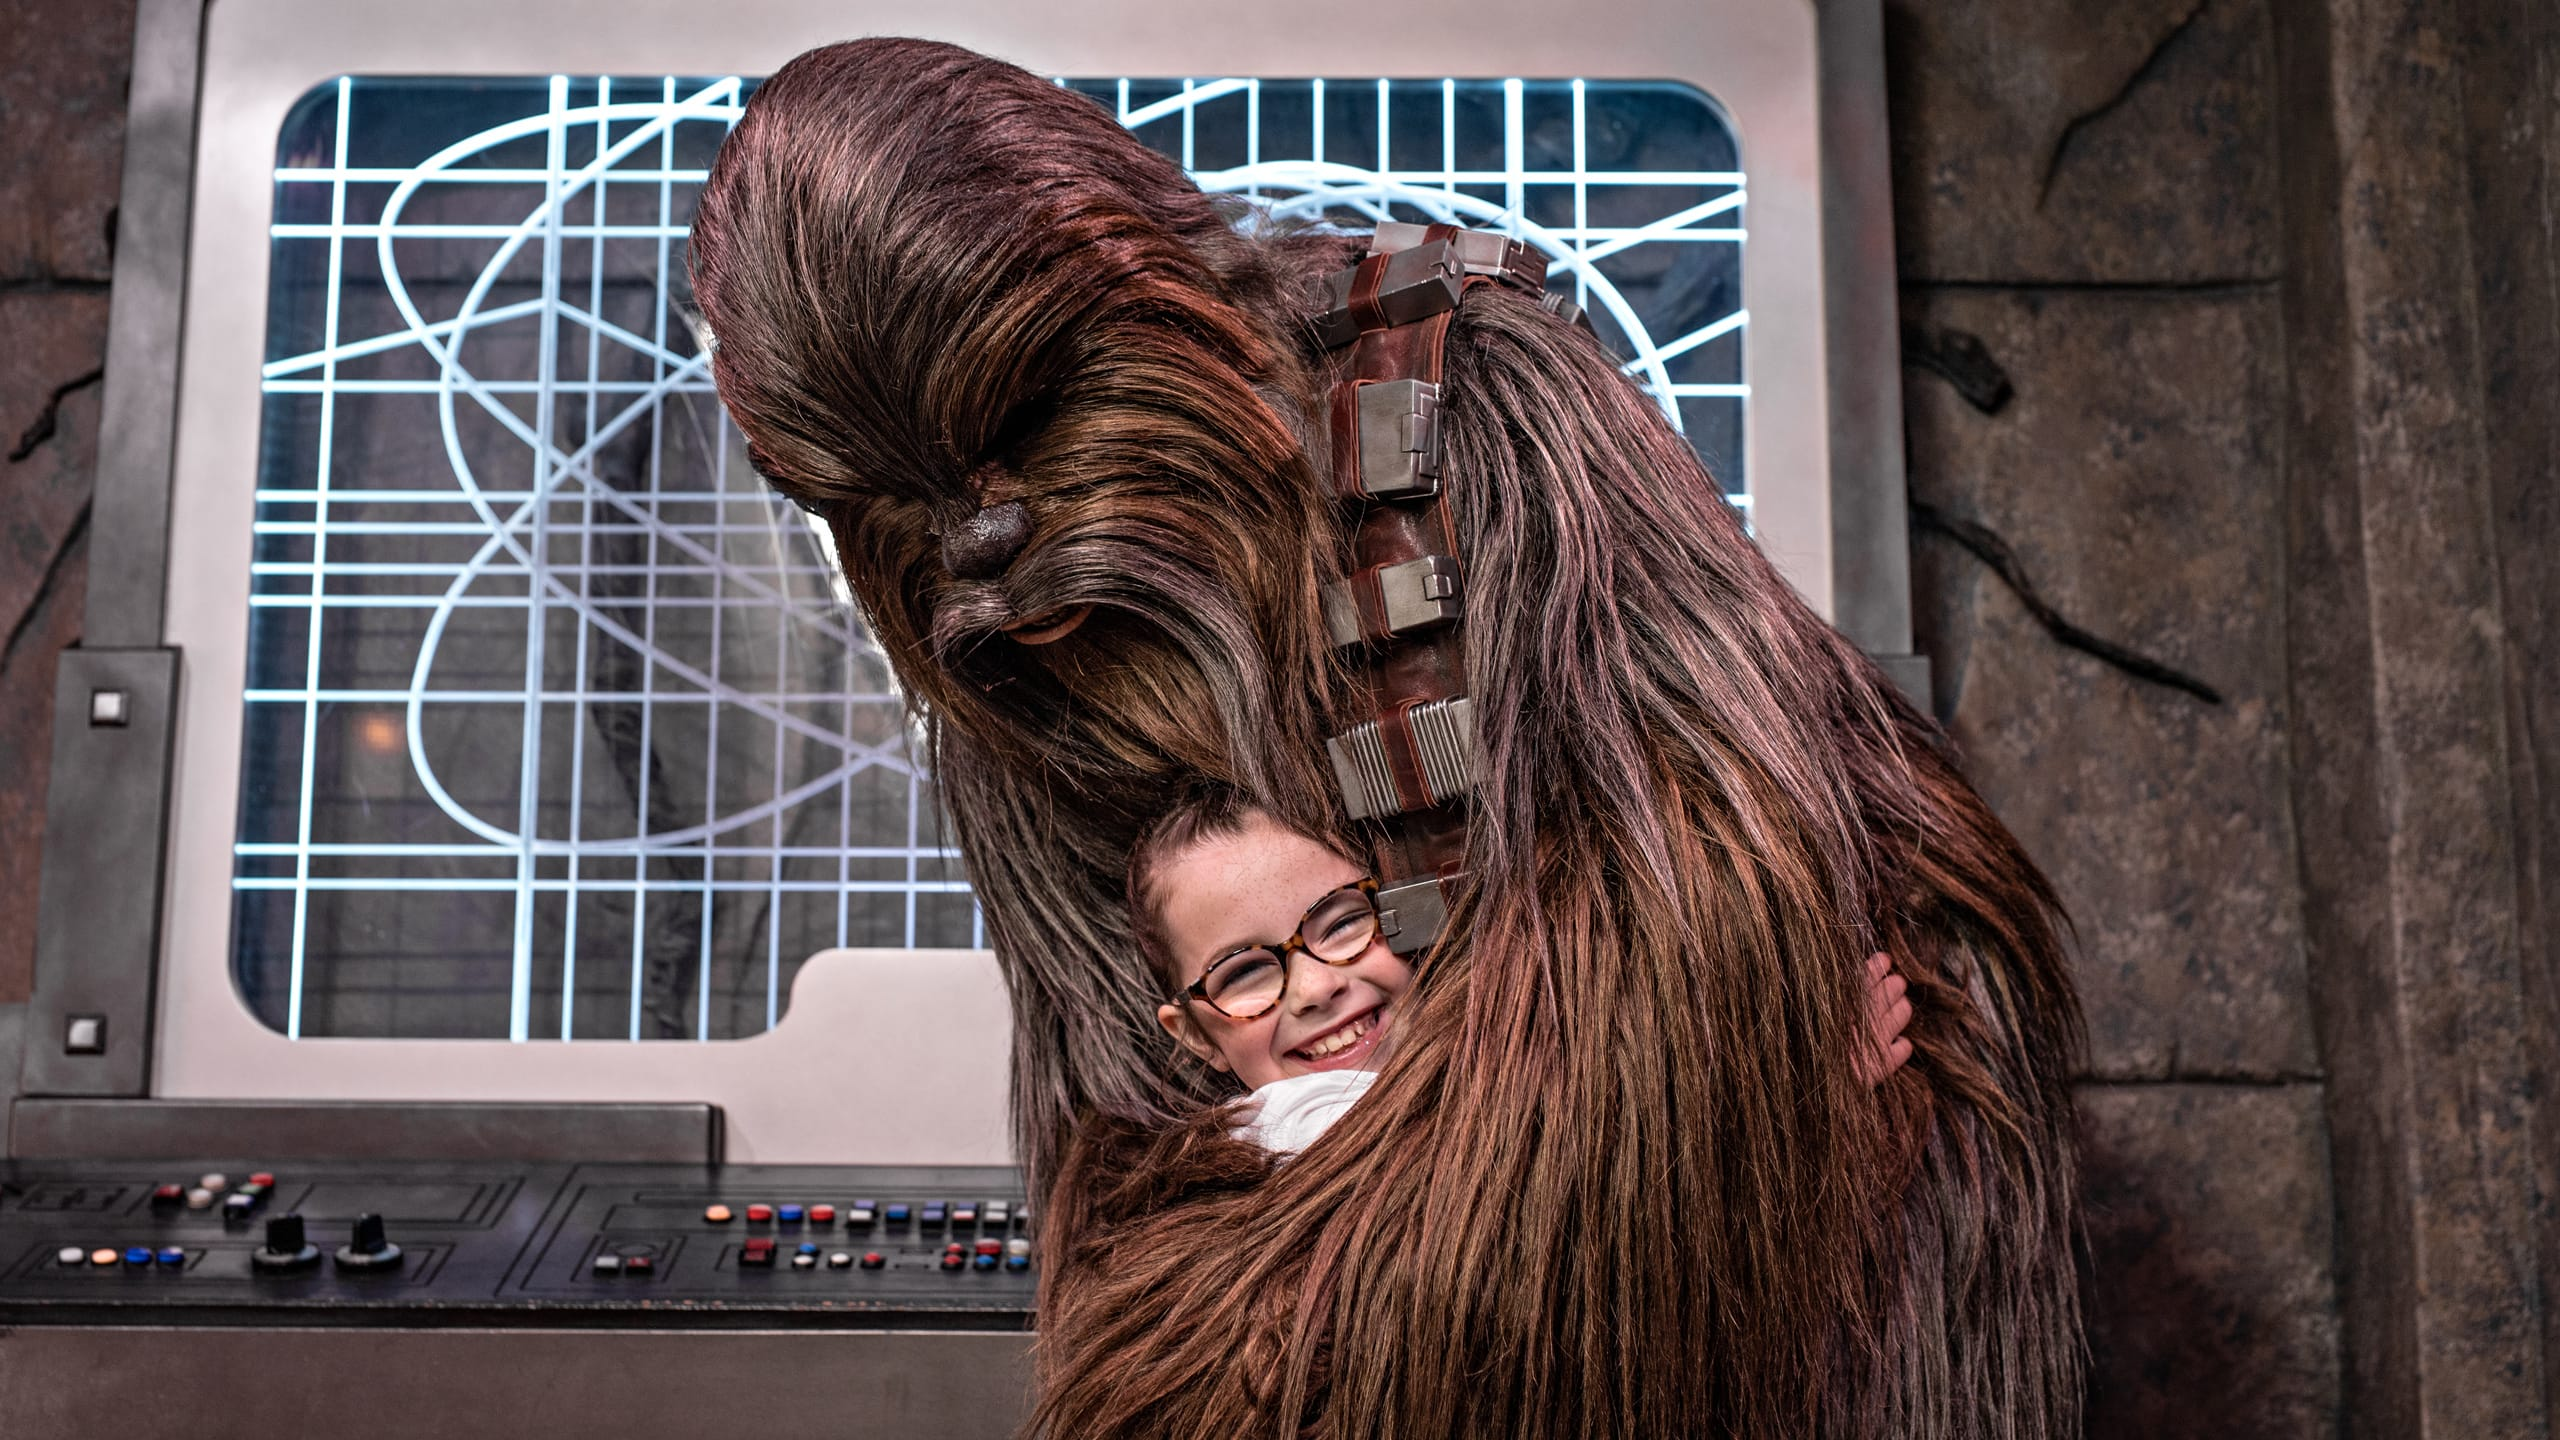 Chewbacca hugs a young girl in Star Wars Launch Bay